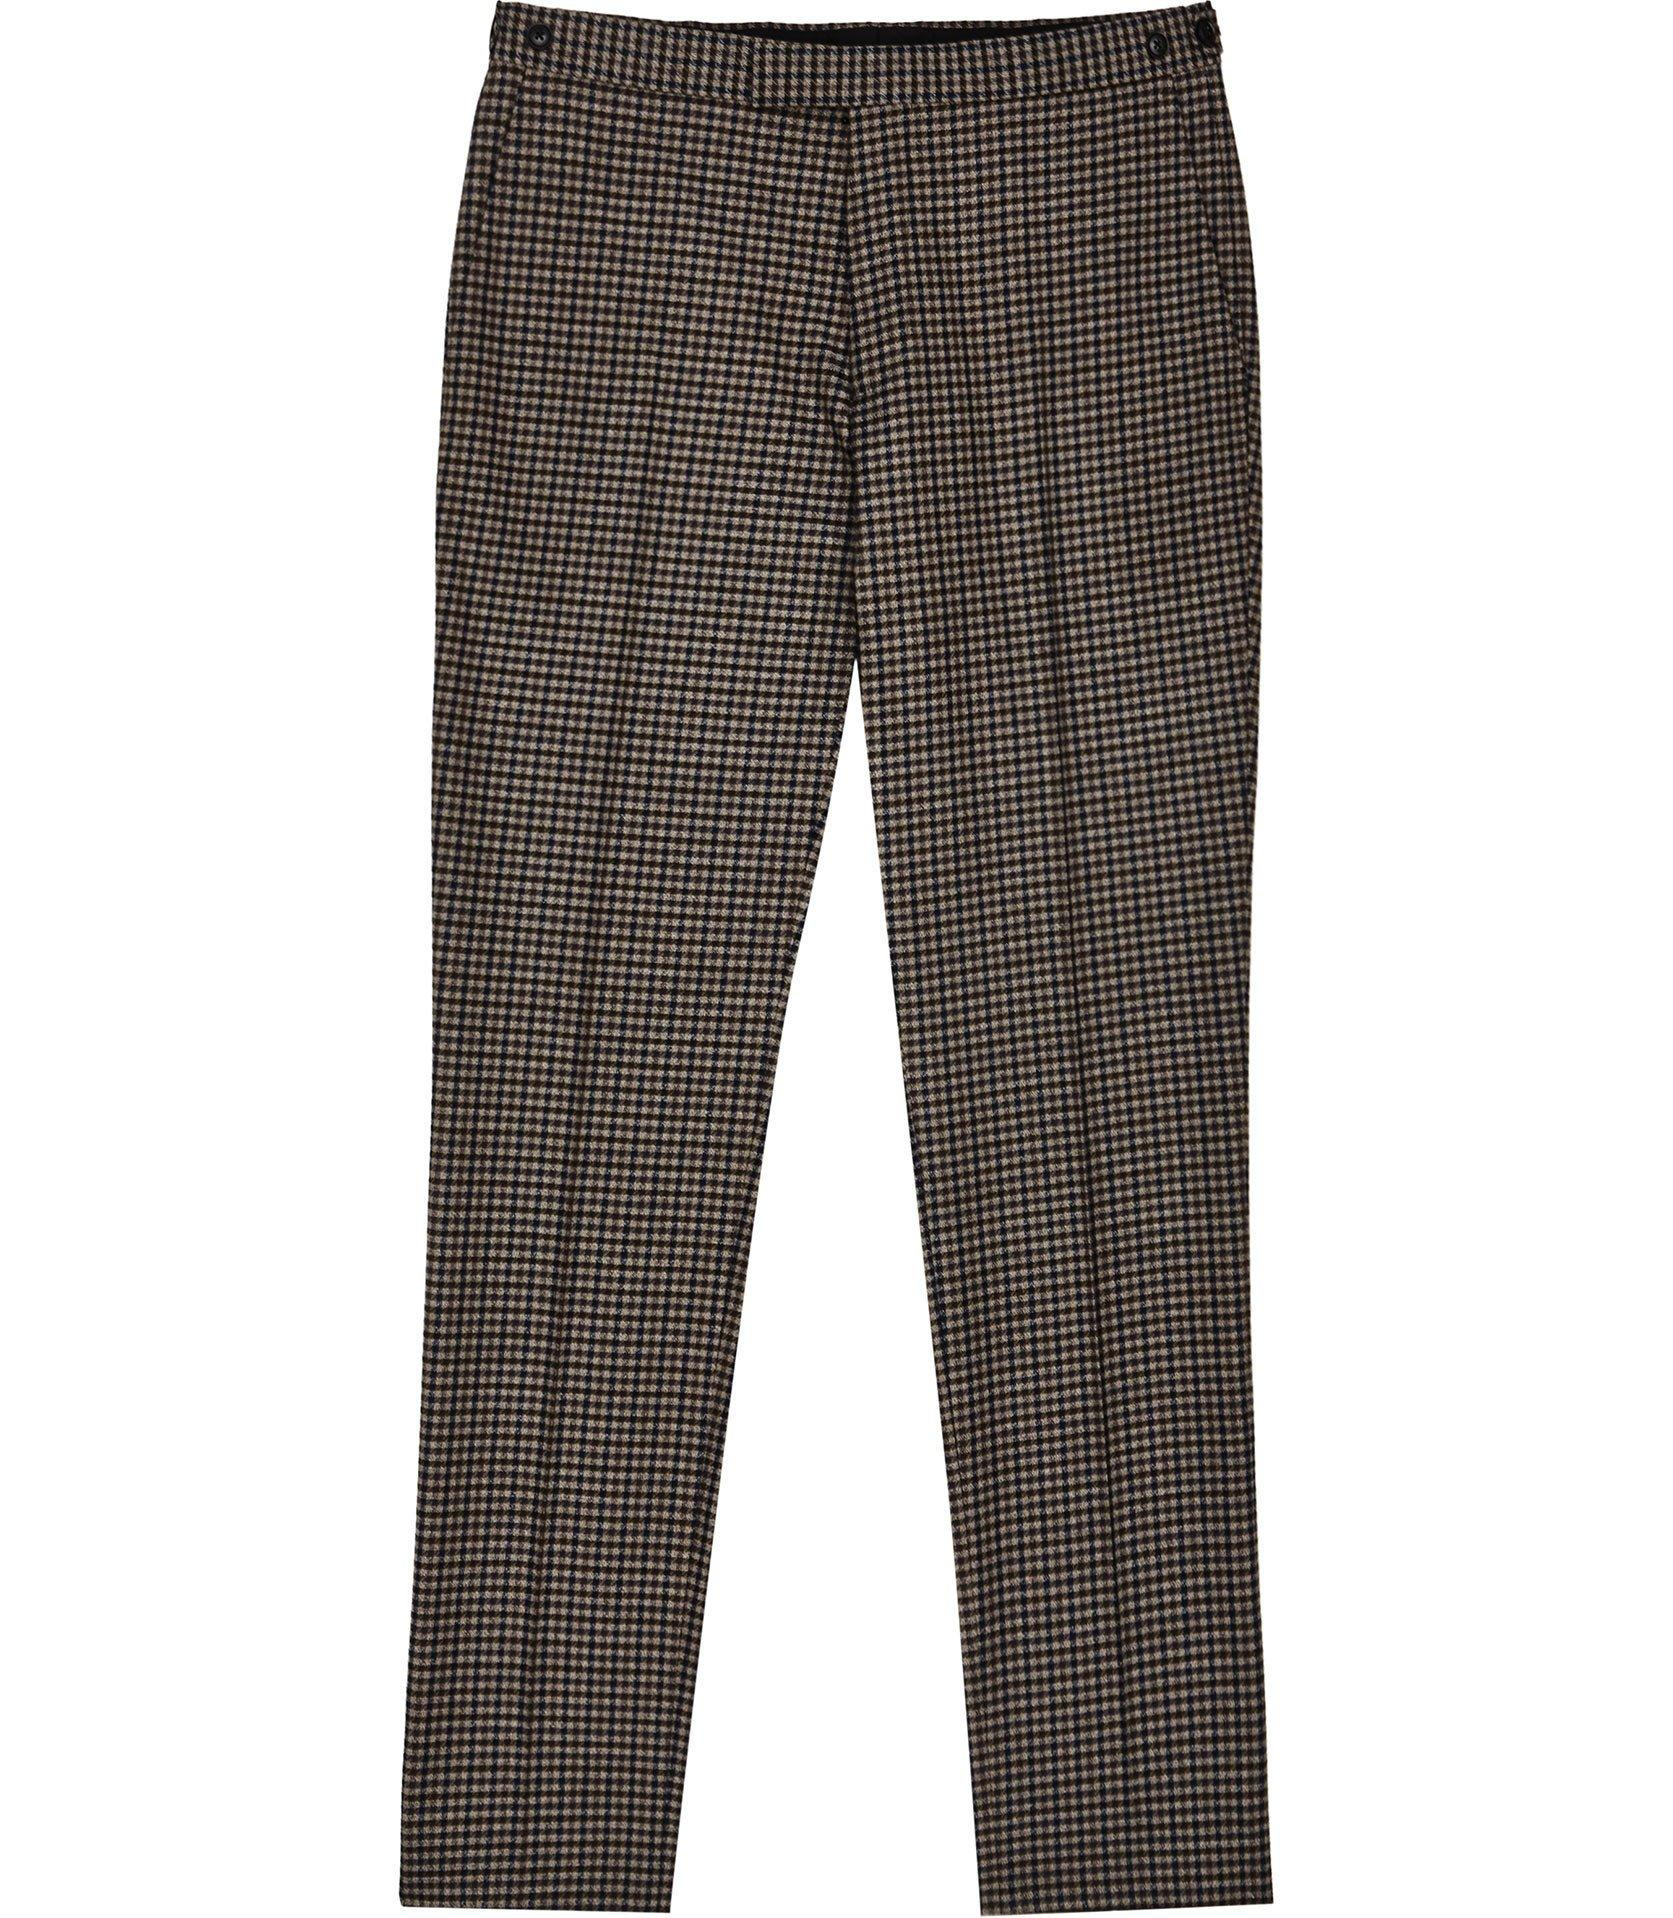 7f93b936150b Reiss - Brown Tripper - Houndstooth Checked Trousers for Men - Lyst. View  fullscreen